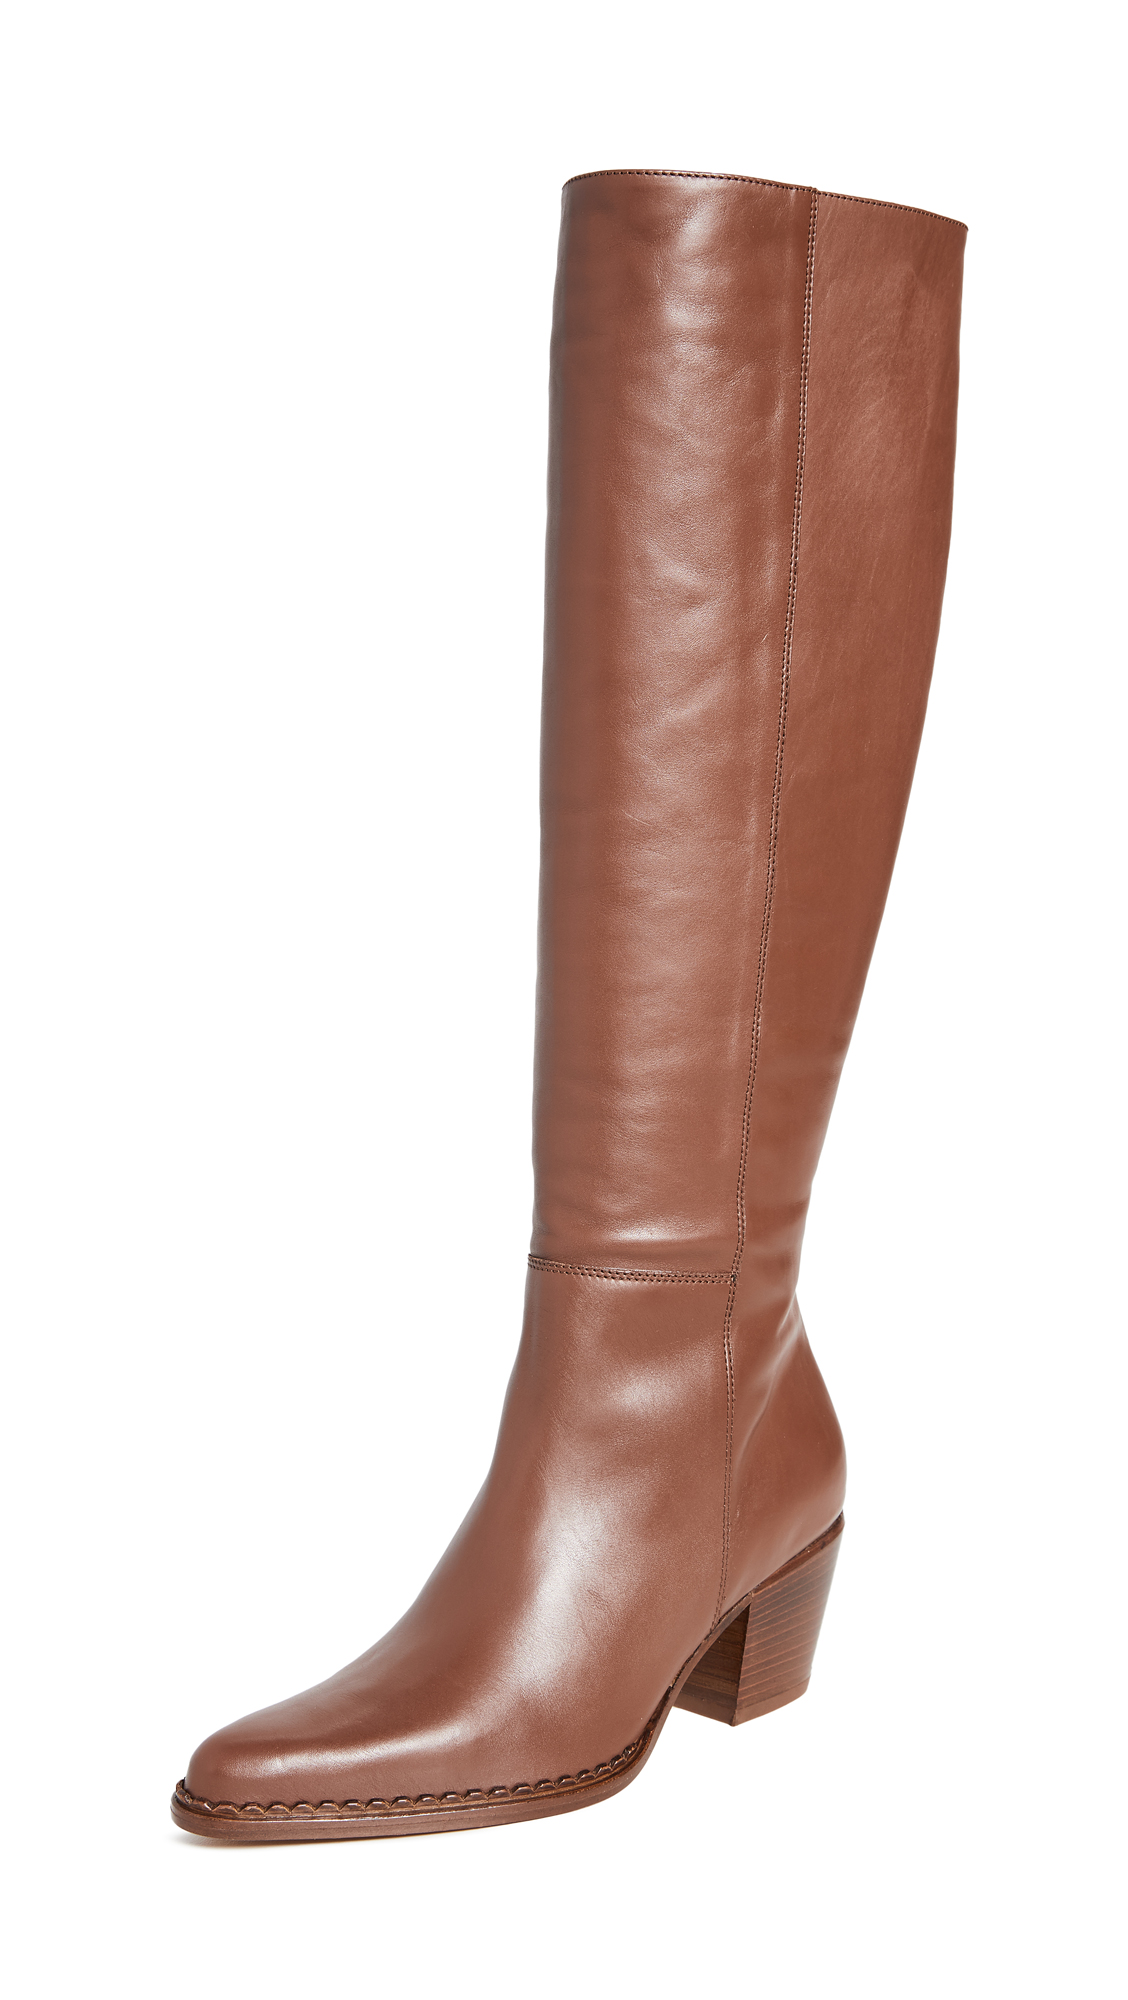 Buy Vince Hurley Tall Boots online, shop Vince